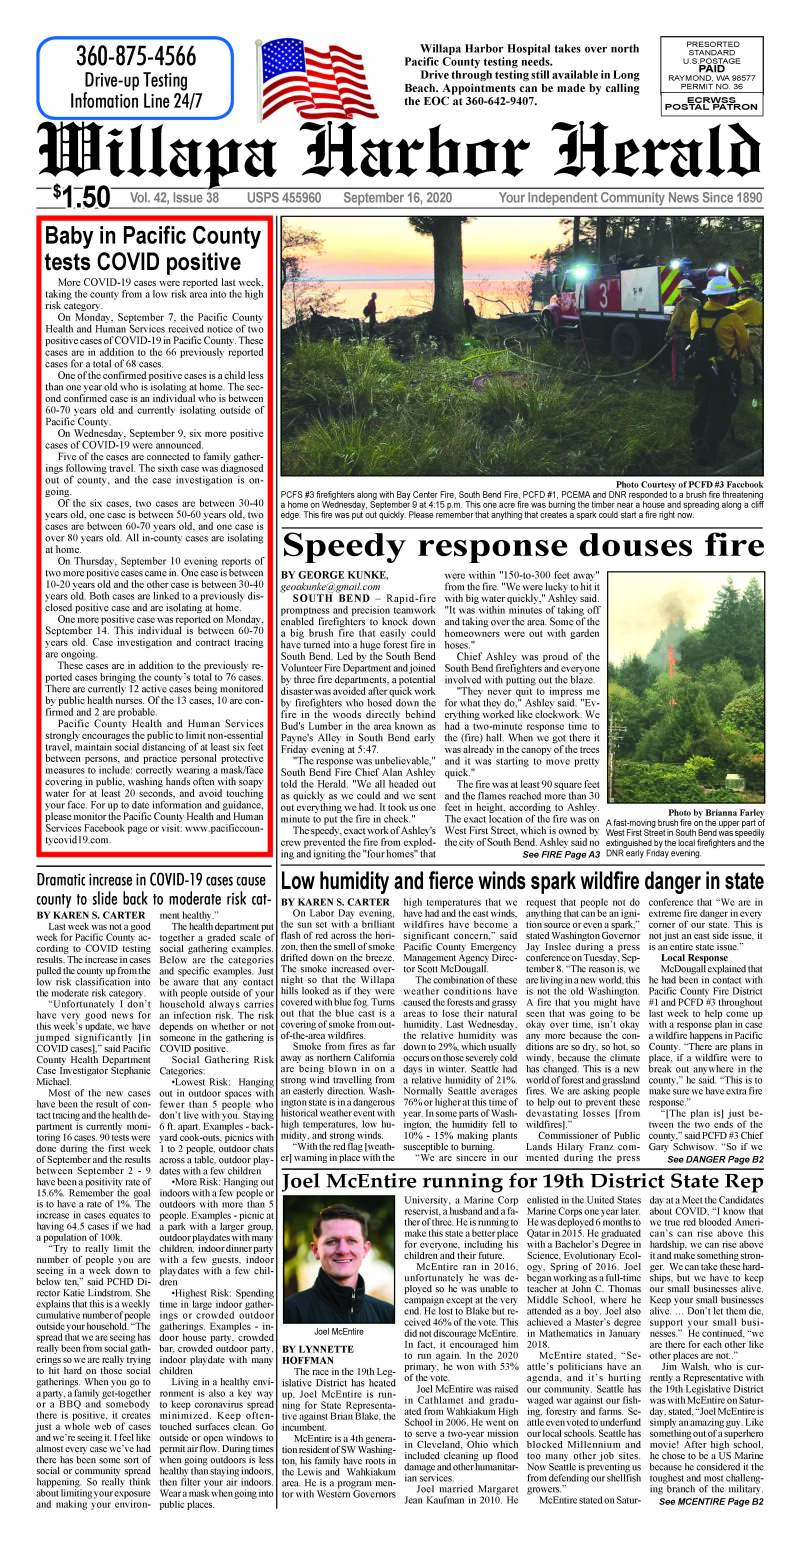 September 16, 2020 Willapa Harbor Herald and Pacific County Press